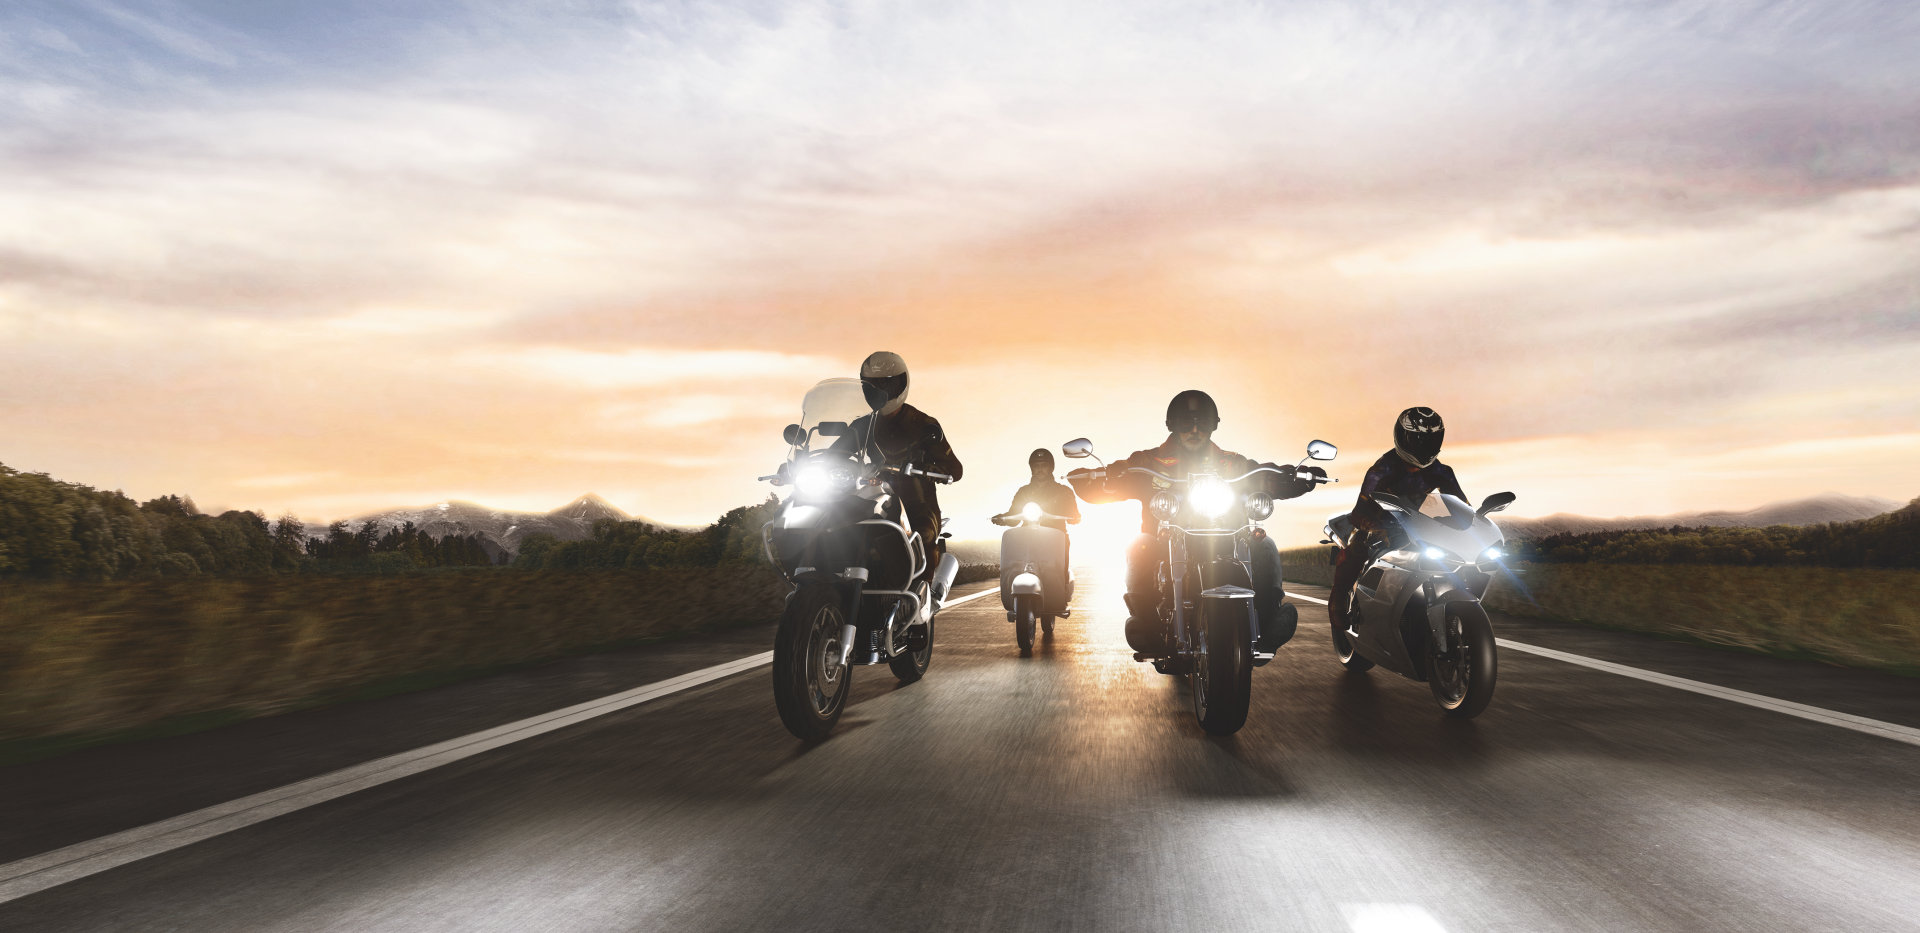 Motorcycle_lamps_from_OSRAM_increase_visibility_and_conspicuousness_on_the_road..jpg